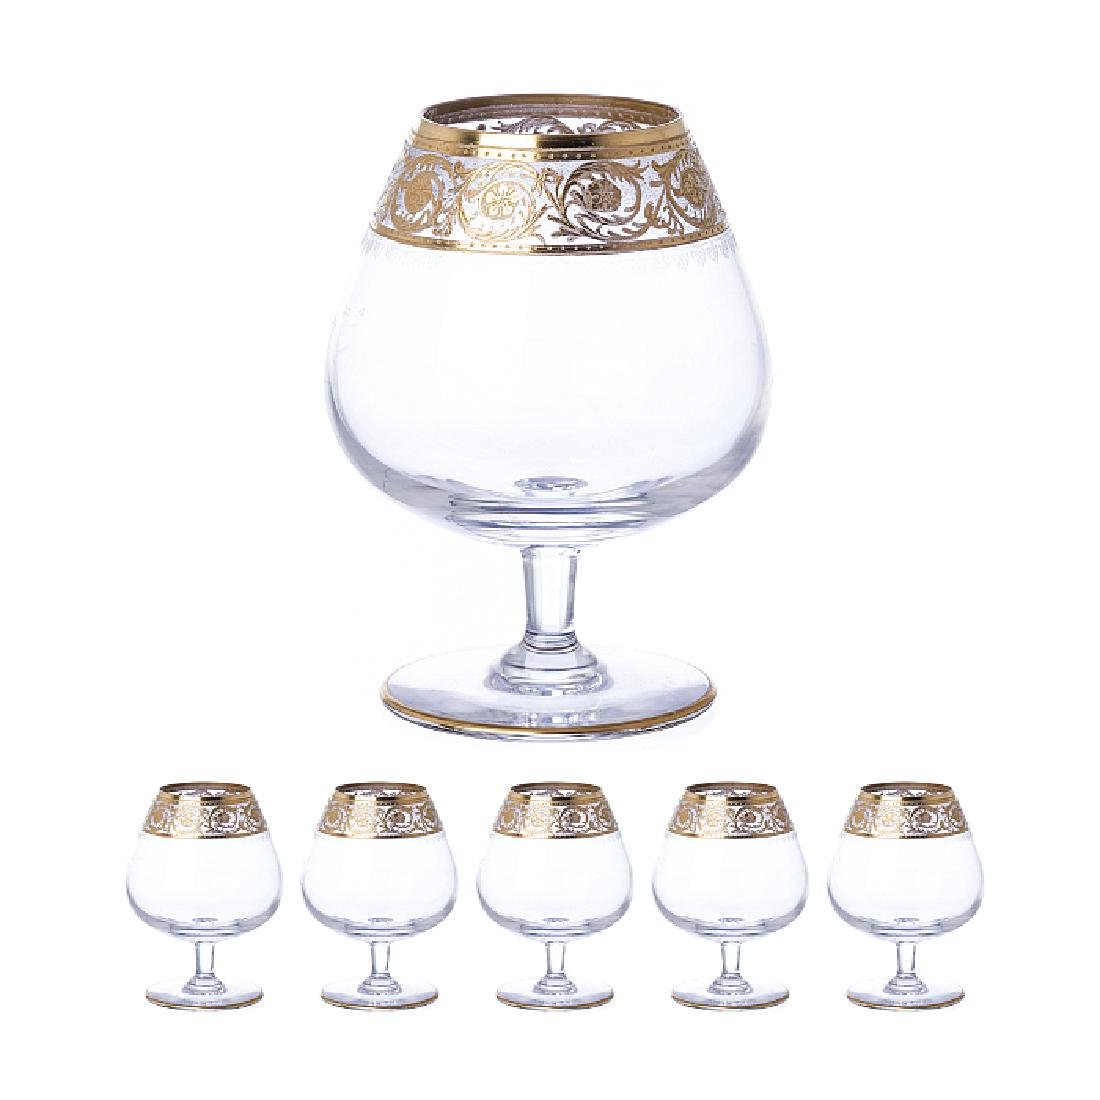 SAINT LOUIS - Six cognac snifters in crystal